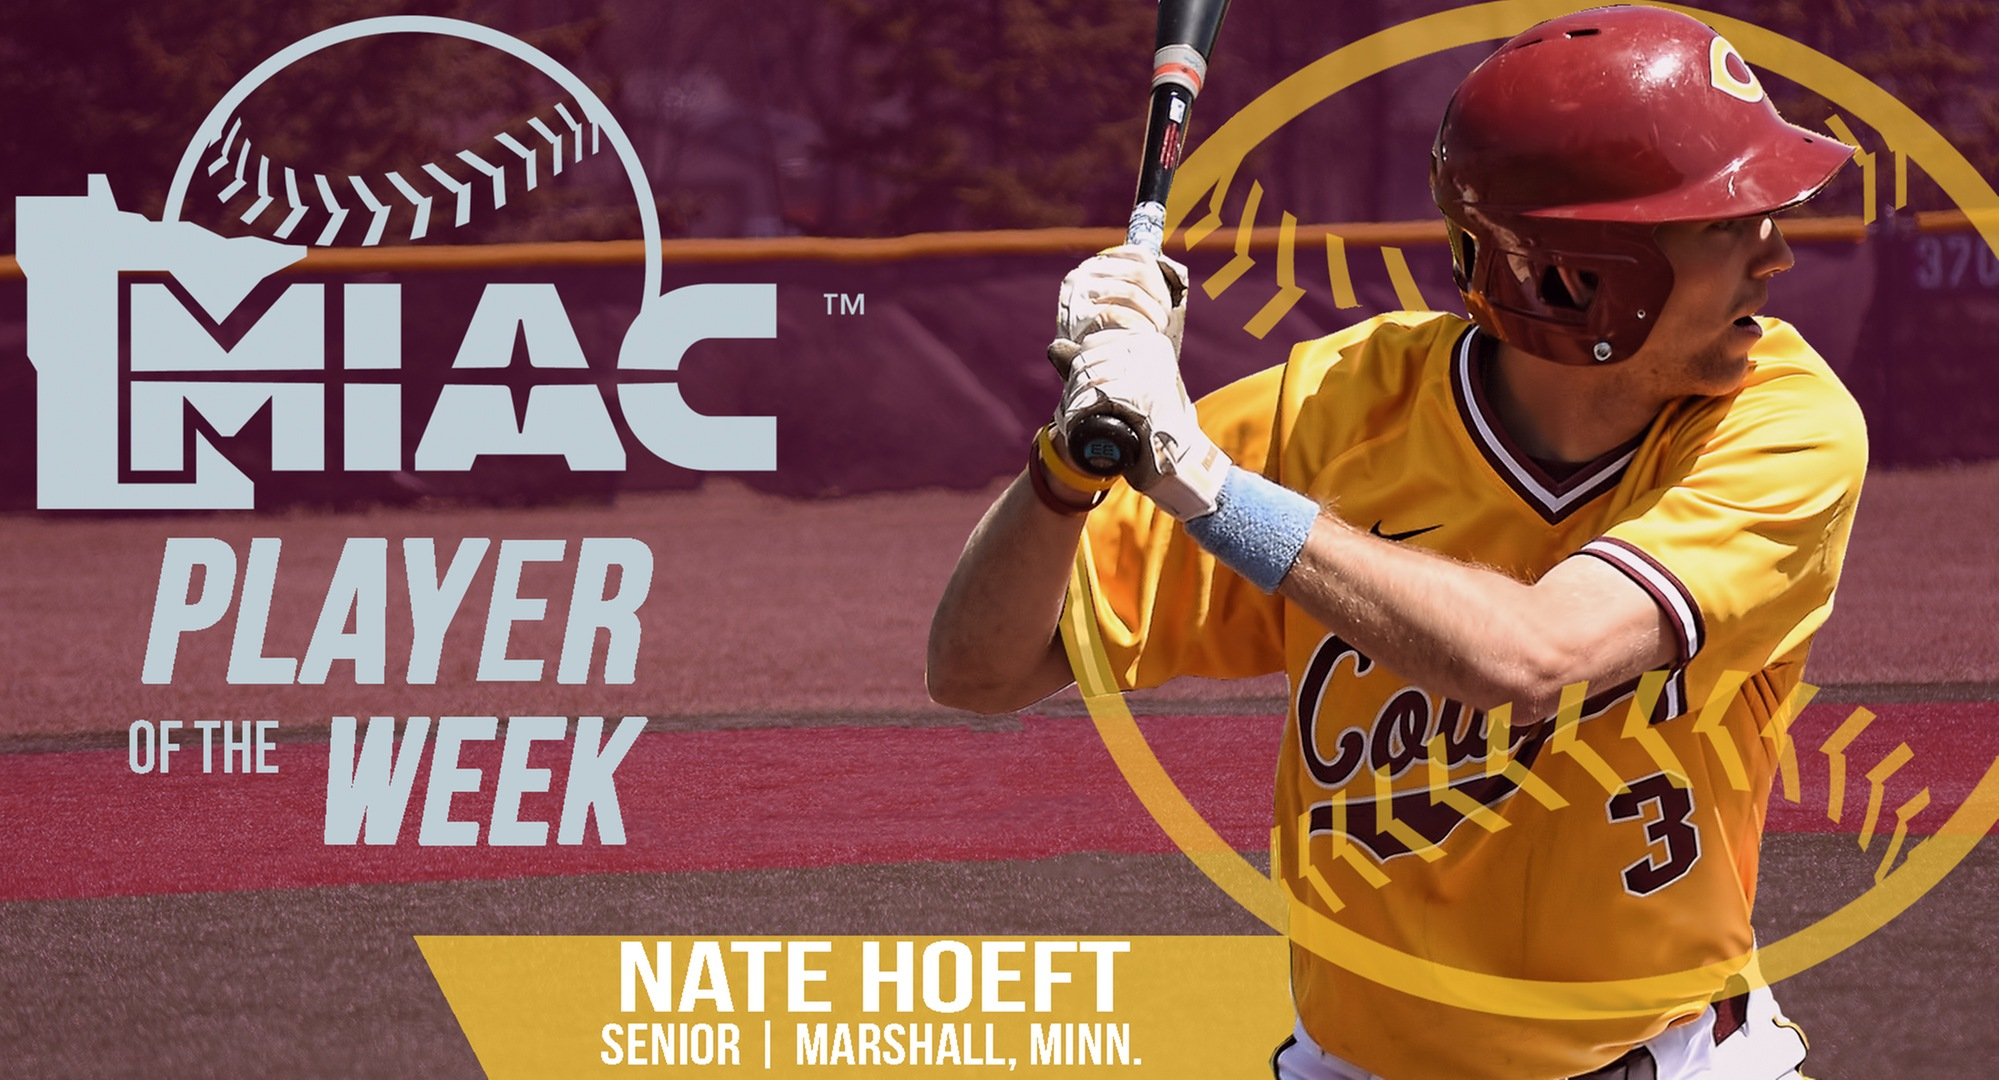 Senior Nate Hoeft earned his first-ever MIAC Player of the Week honor after hitting .526 in his first five games of the year.